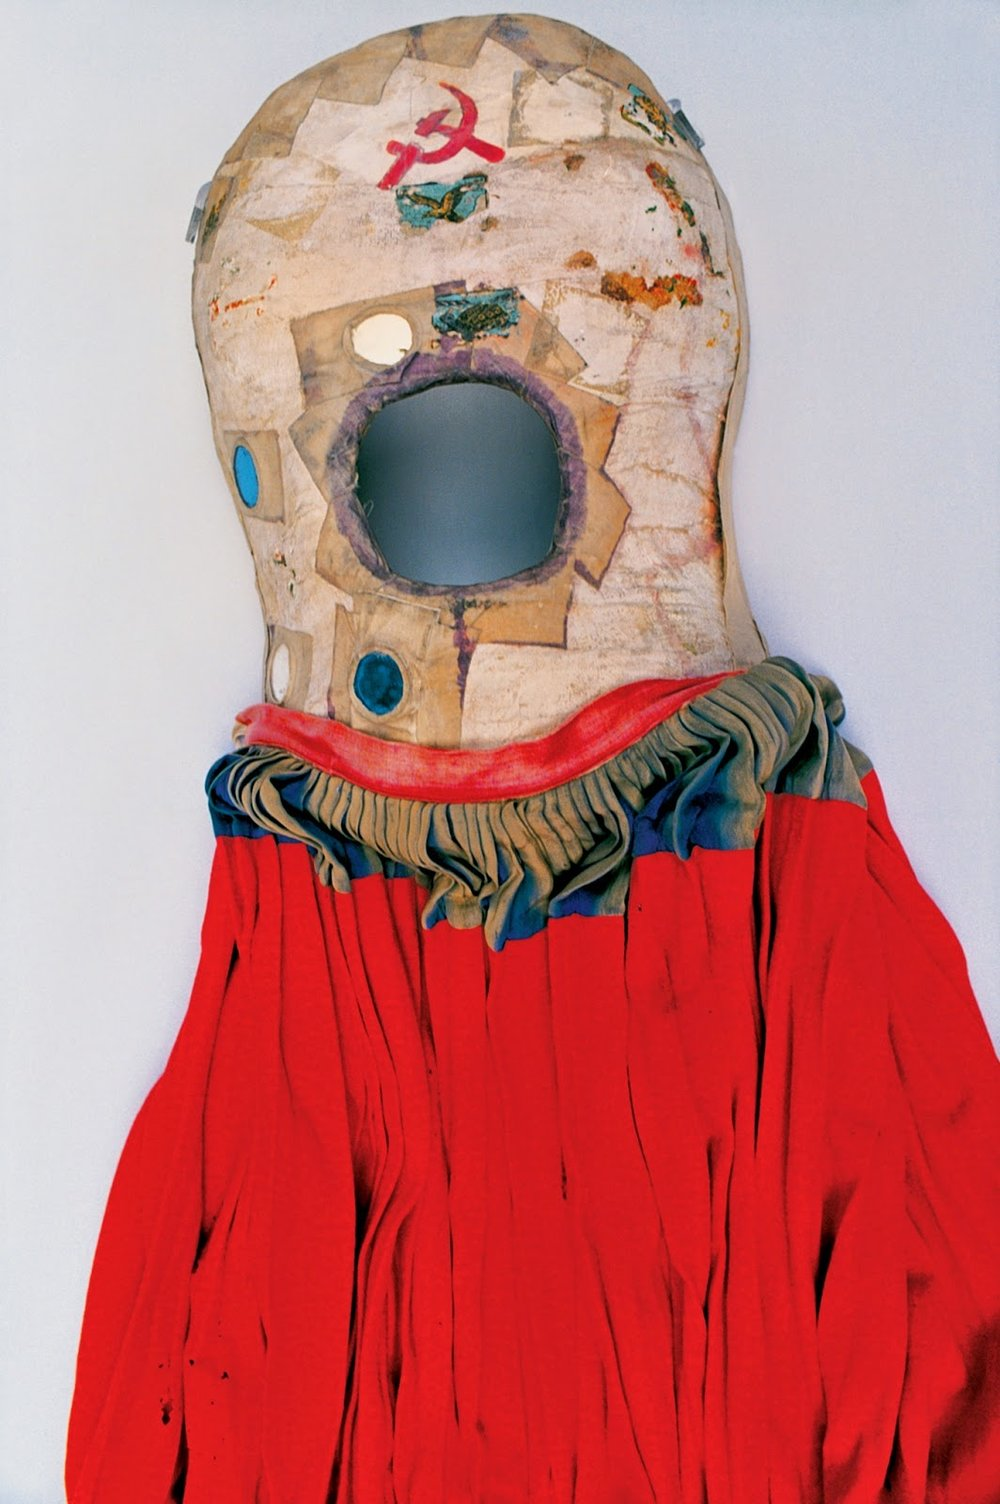 #23 After her bus accident, Kahlo was in a full body cast for three months, and she remained in pain for the rest of her life. She painted her casts and corsets, turning them from medical equipment into artworks